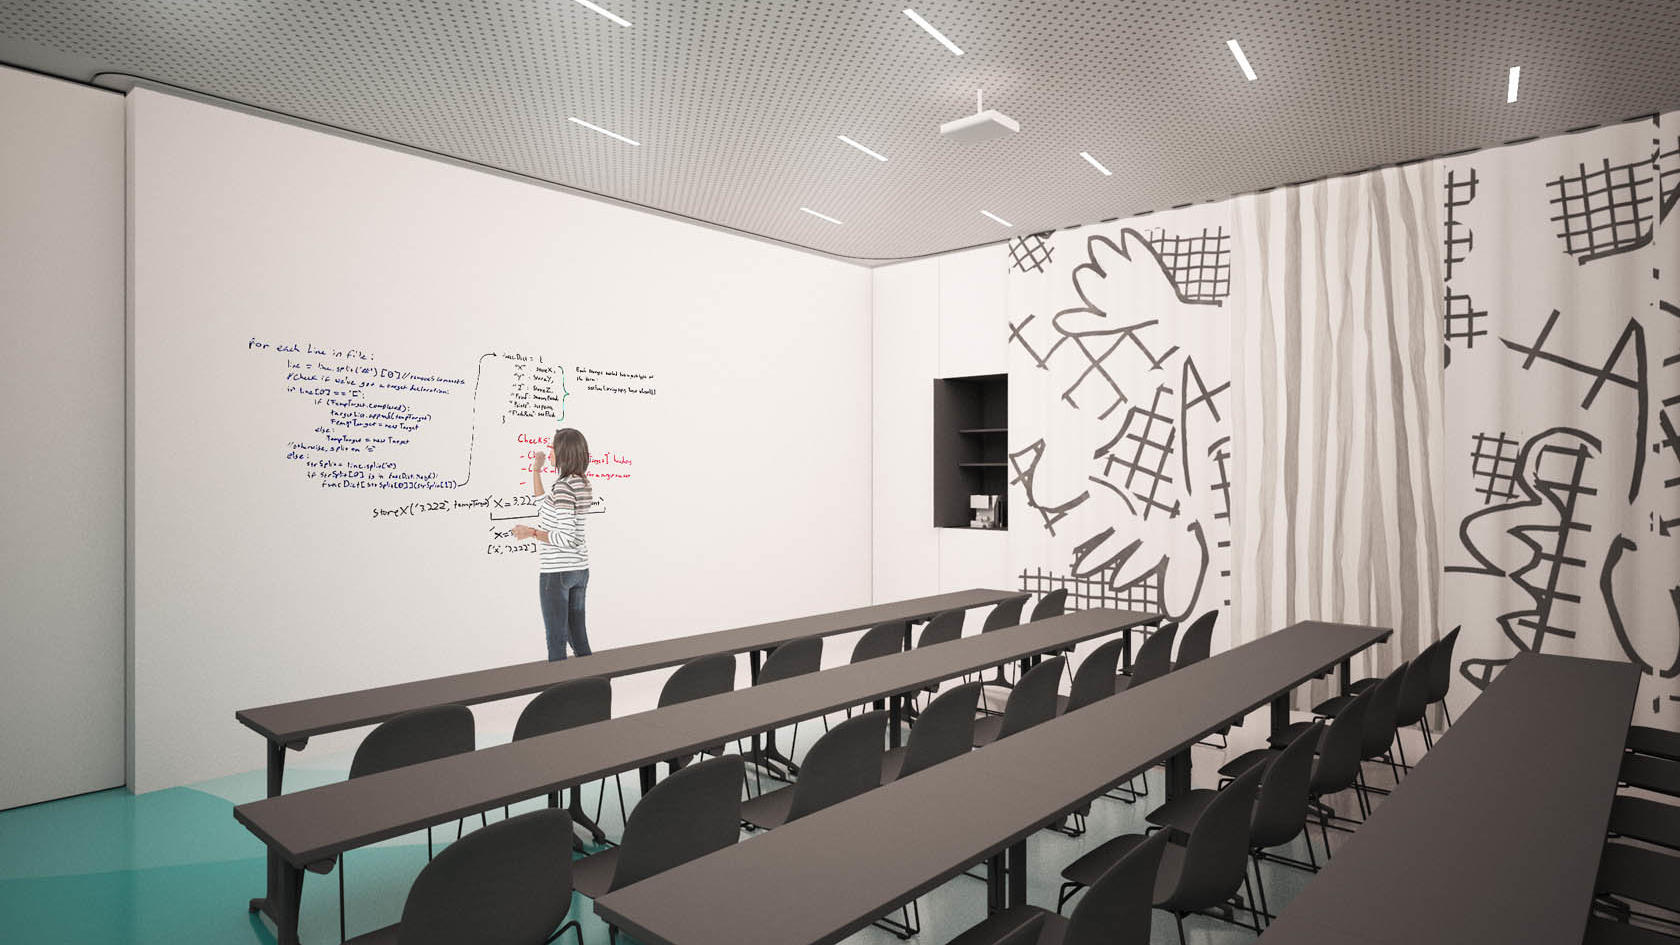 Classroom shape conference or meeting room at Hotel Lev in Ljubl